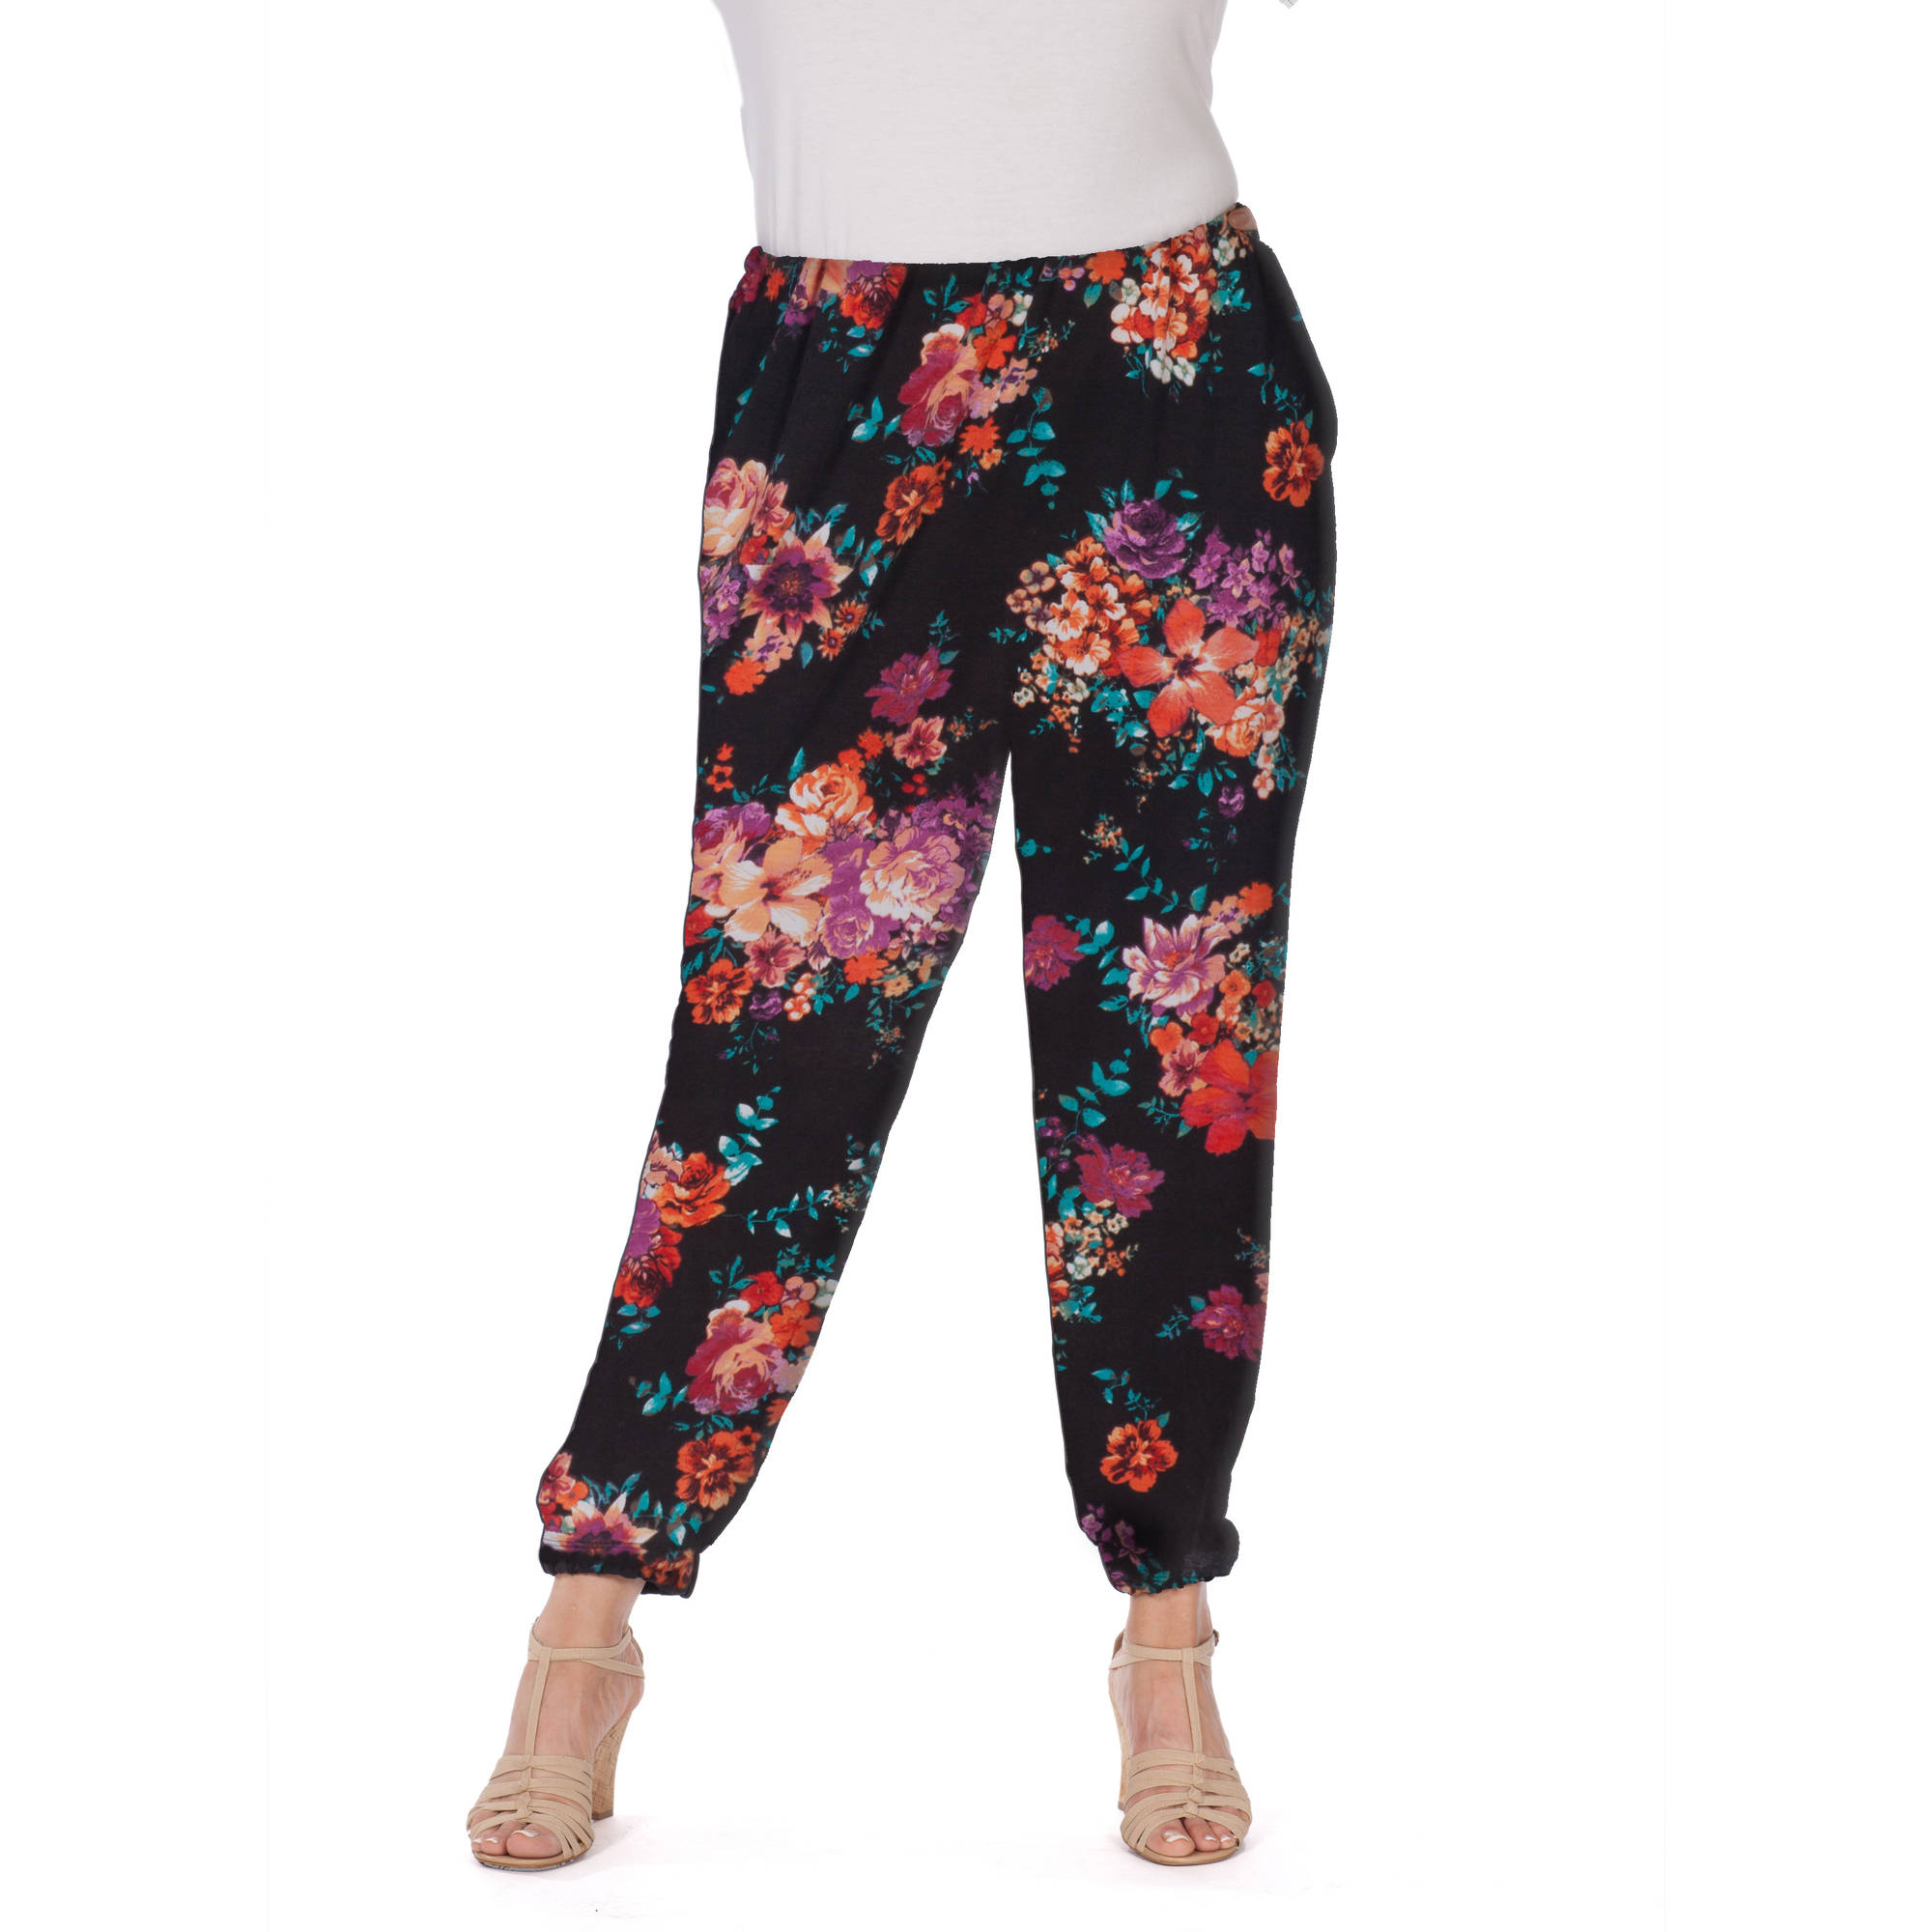 Plus Moda Women's Plus-Size Garden Party elastic cuff pant